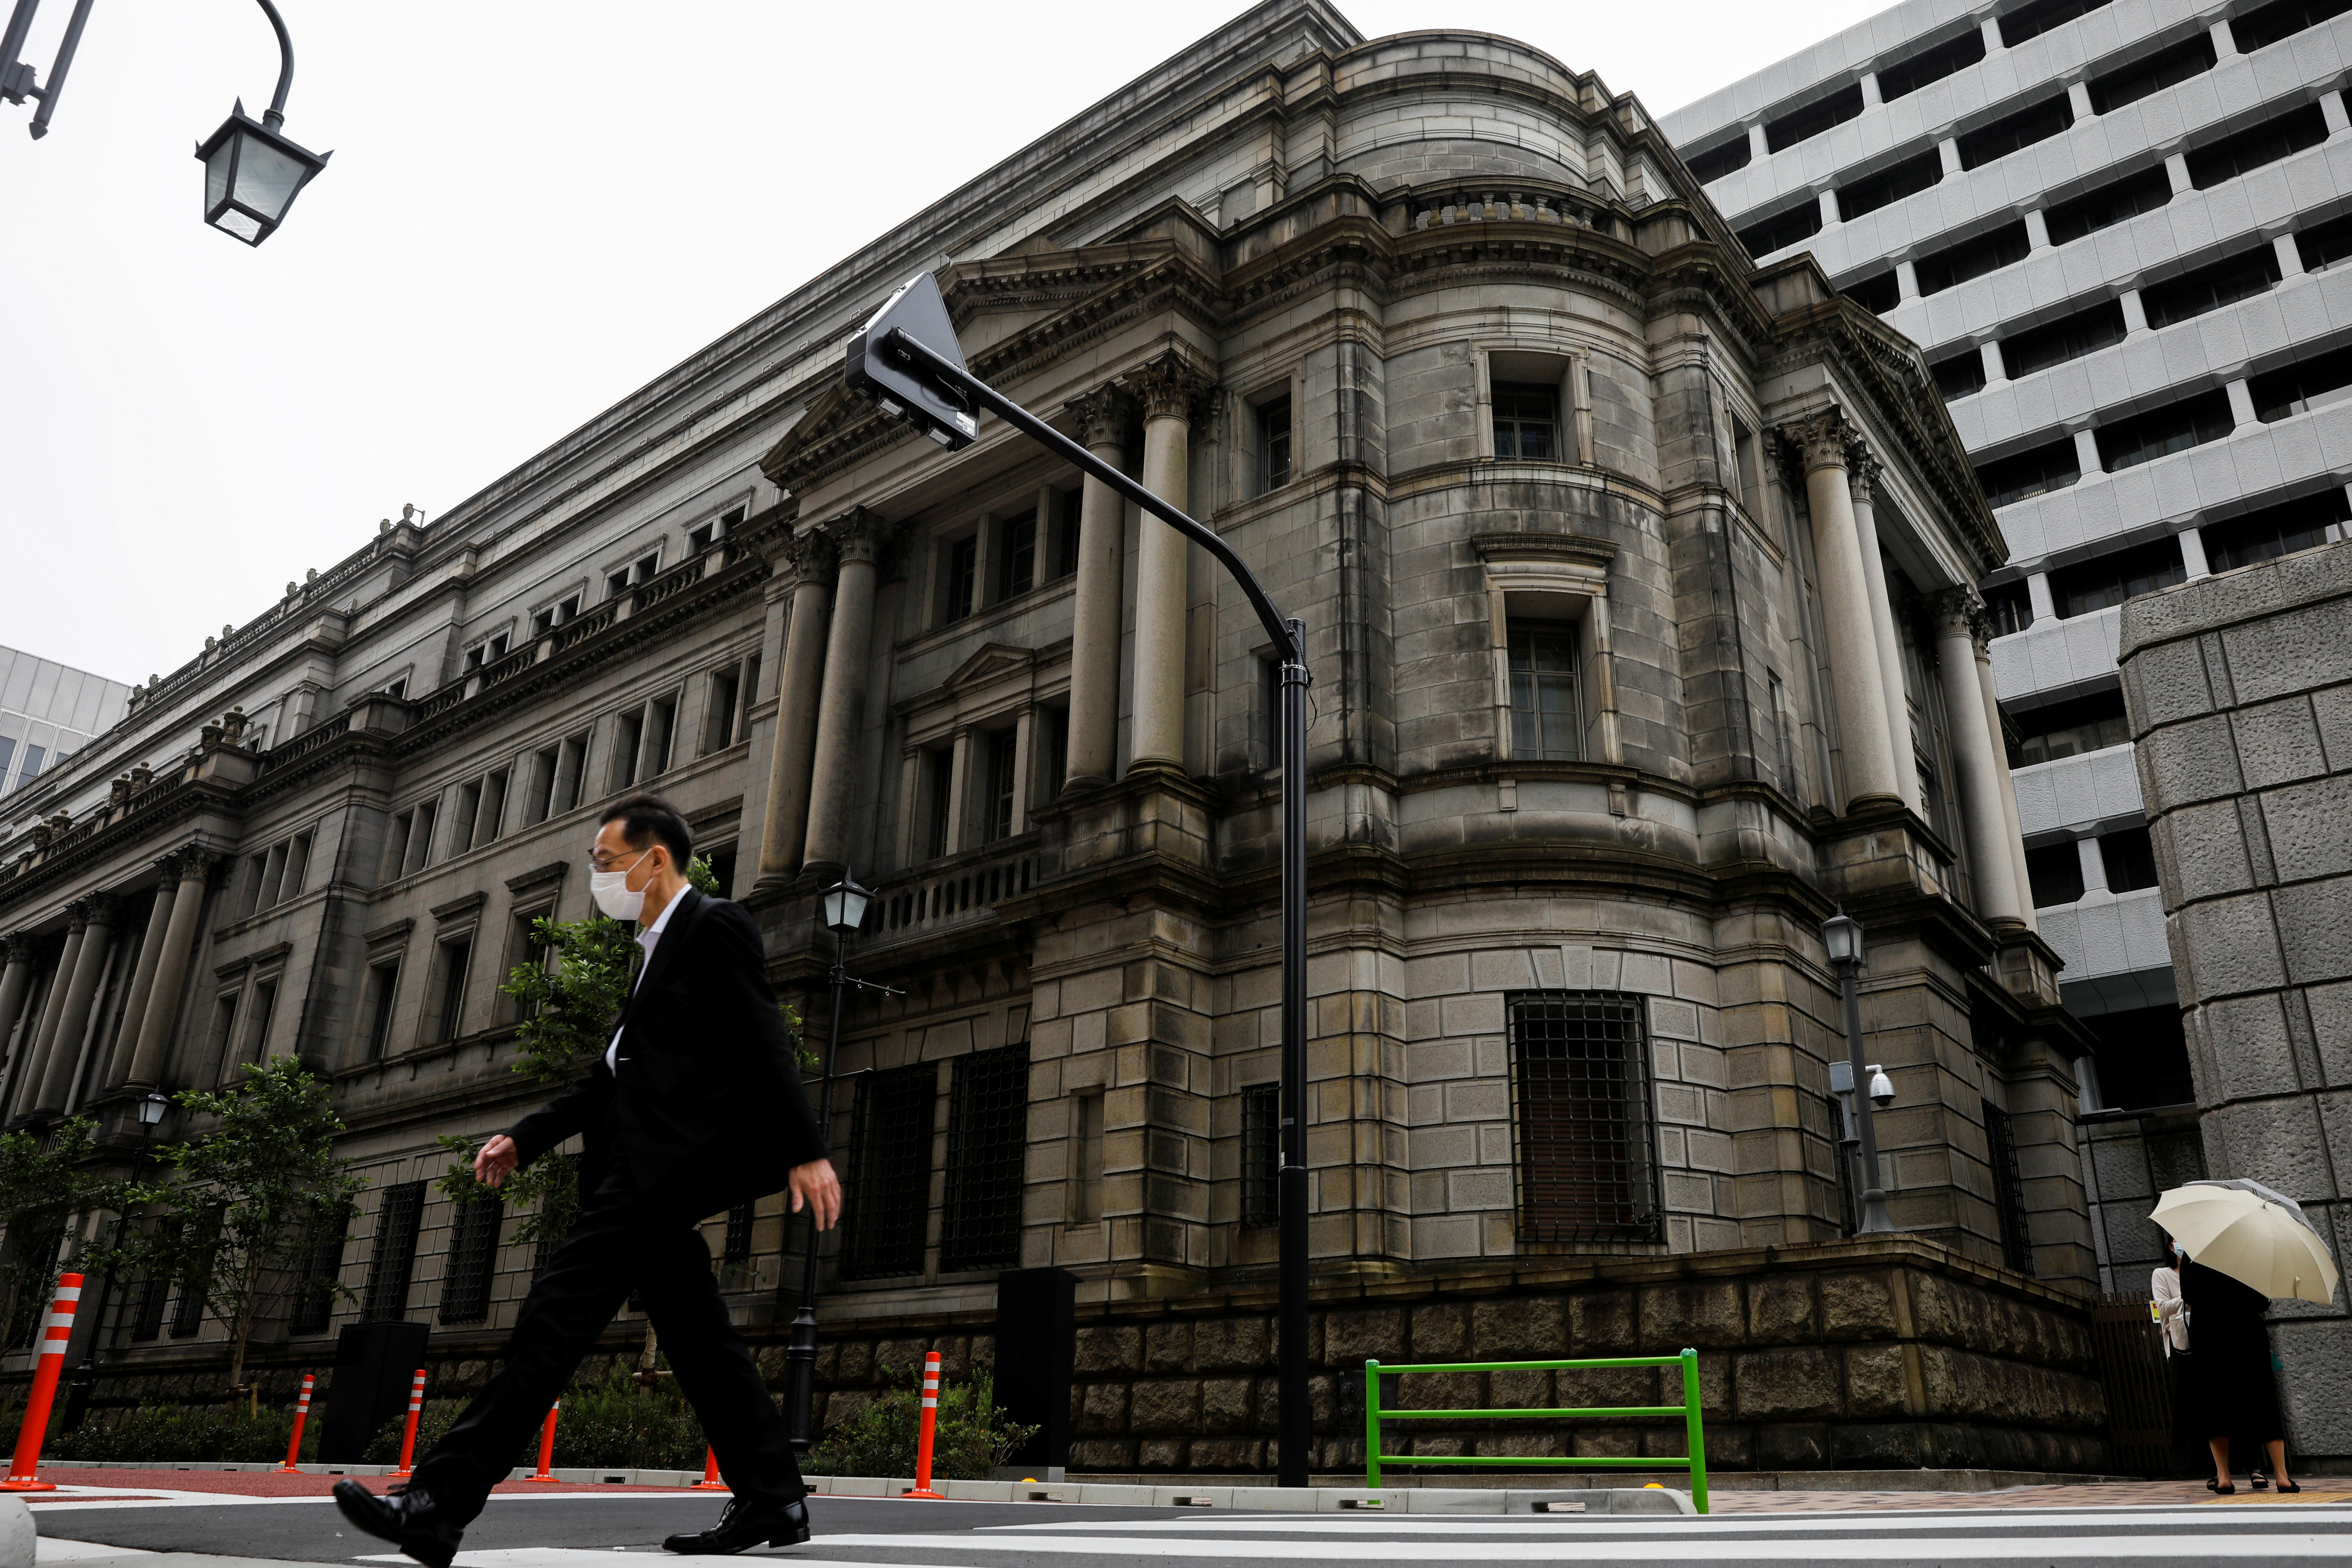 A man wearing a protective mask walks past the headquarters of the Bank of Japan amid the coronavirus disease (COVID-19) outbreak in Tokyo, Japan, May 22, 2020. REUTERS/Kim Kyung-Hoon